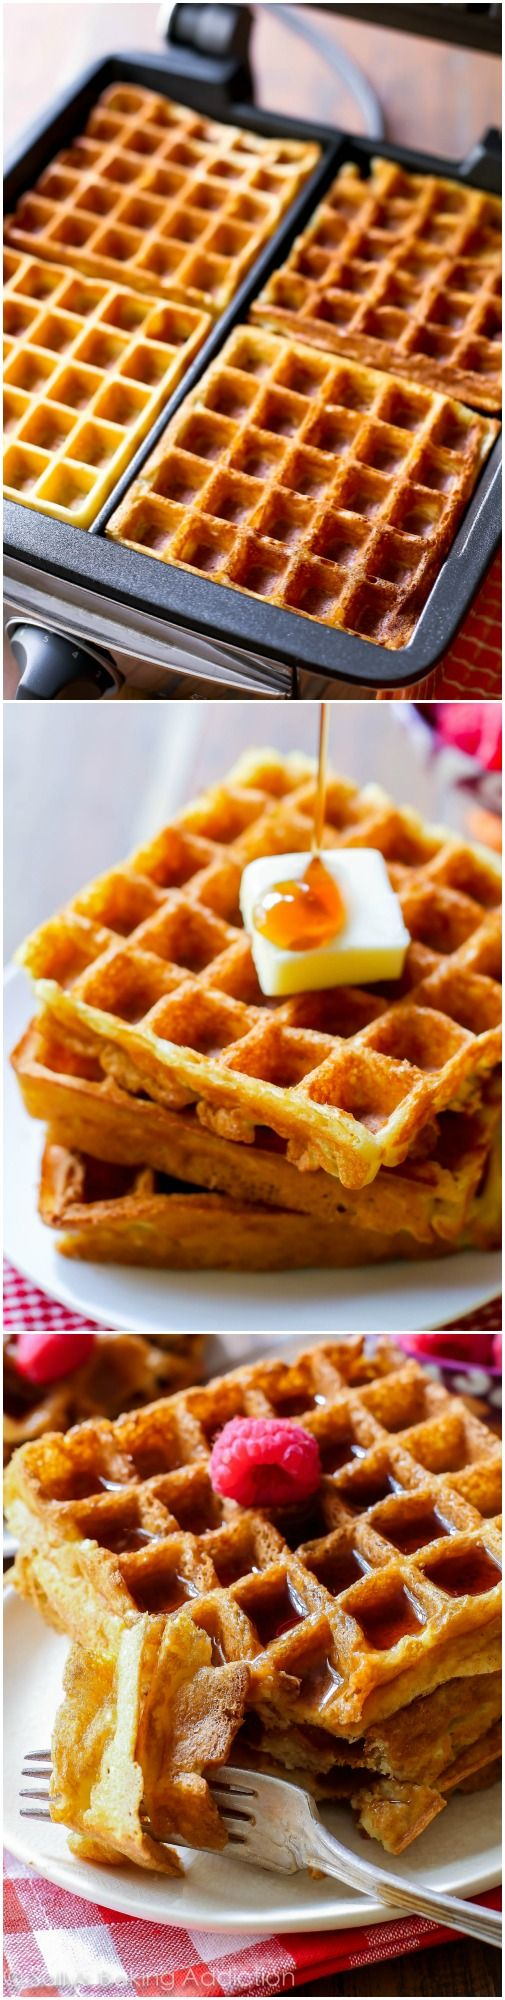 My favorite buttermilk waffles! Delightfully crisp on the outside, light as air on the inside. This is your new favorite recipe for waffles.